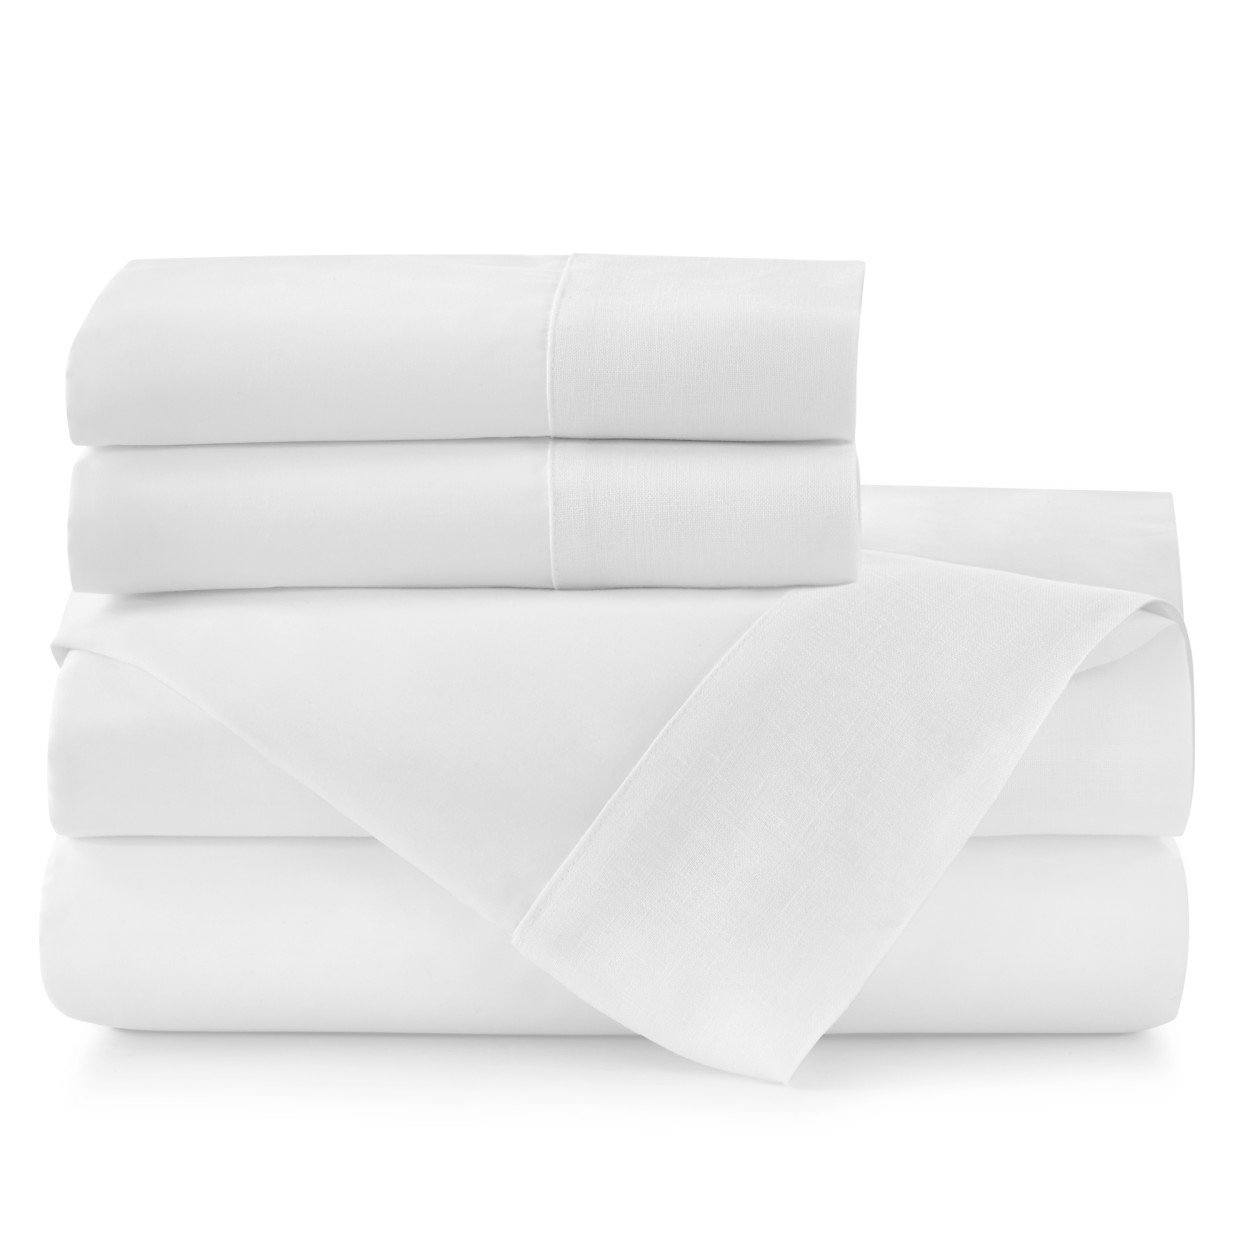 Mandalay Linen Cuff Sheet Set